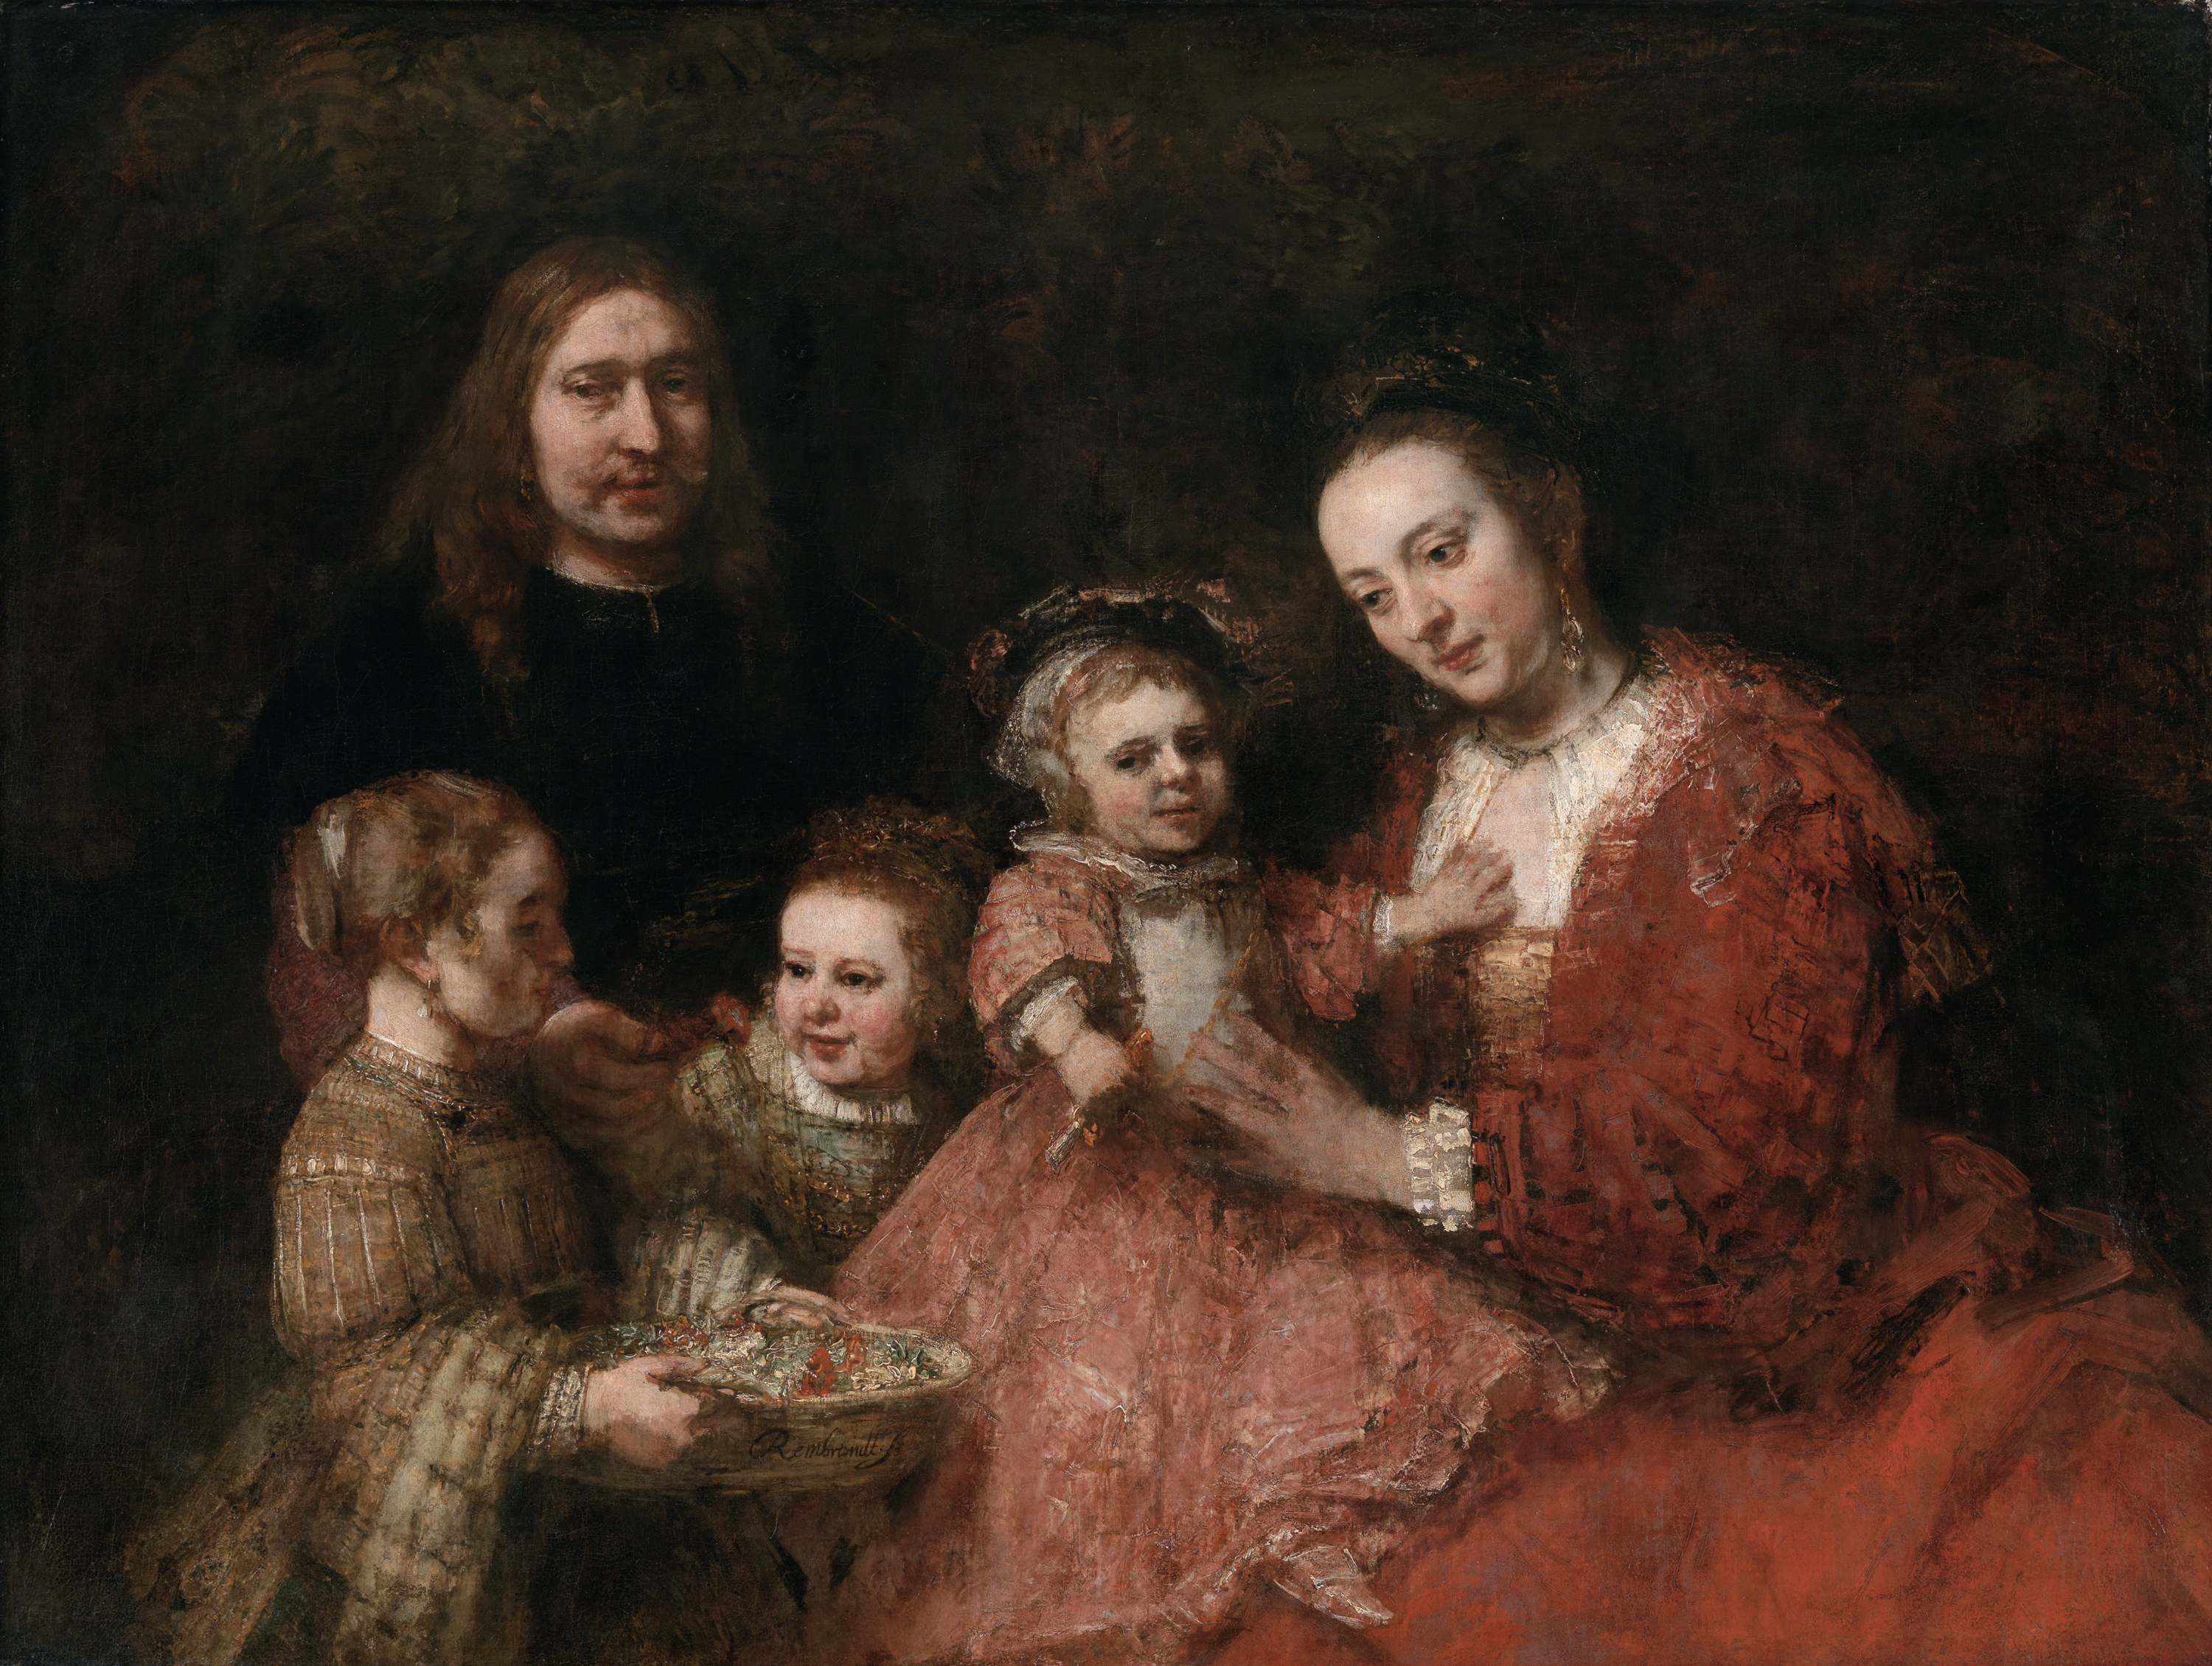 rembrandt dating site Can the great master be brought back to life to create one more painting discover the story behind the next rembrandt: wwwnextrembrandtcom.